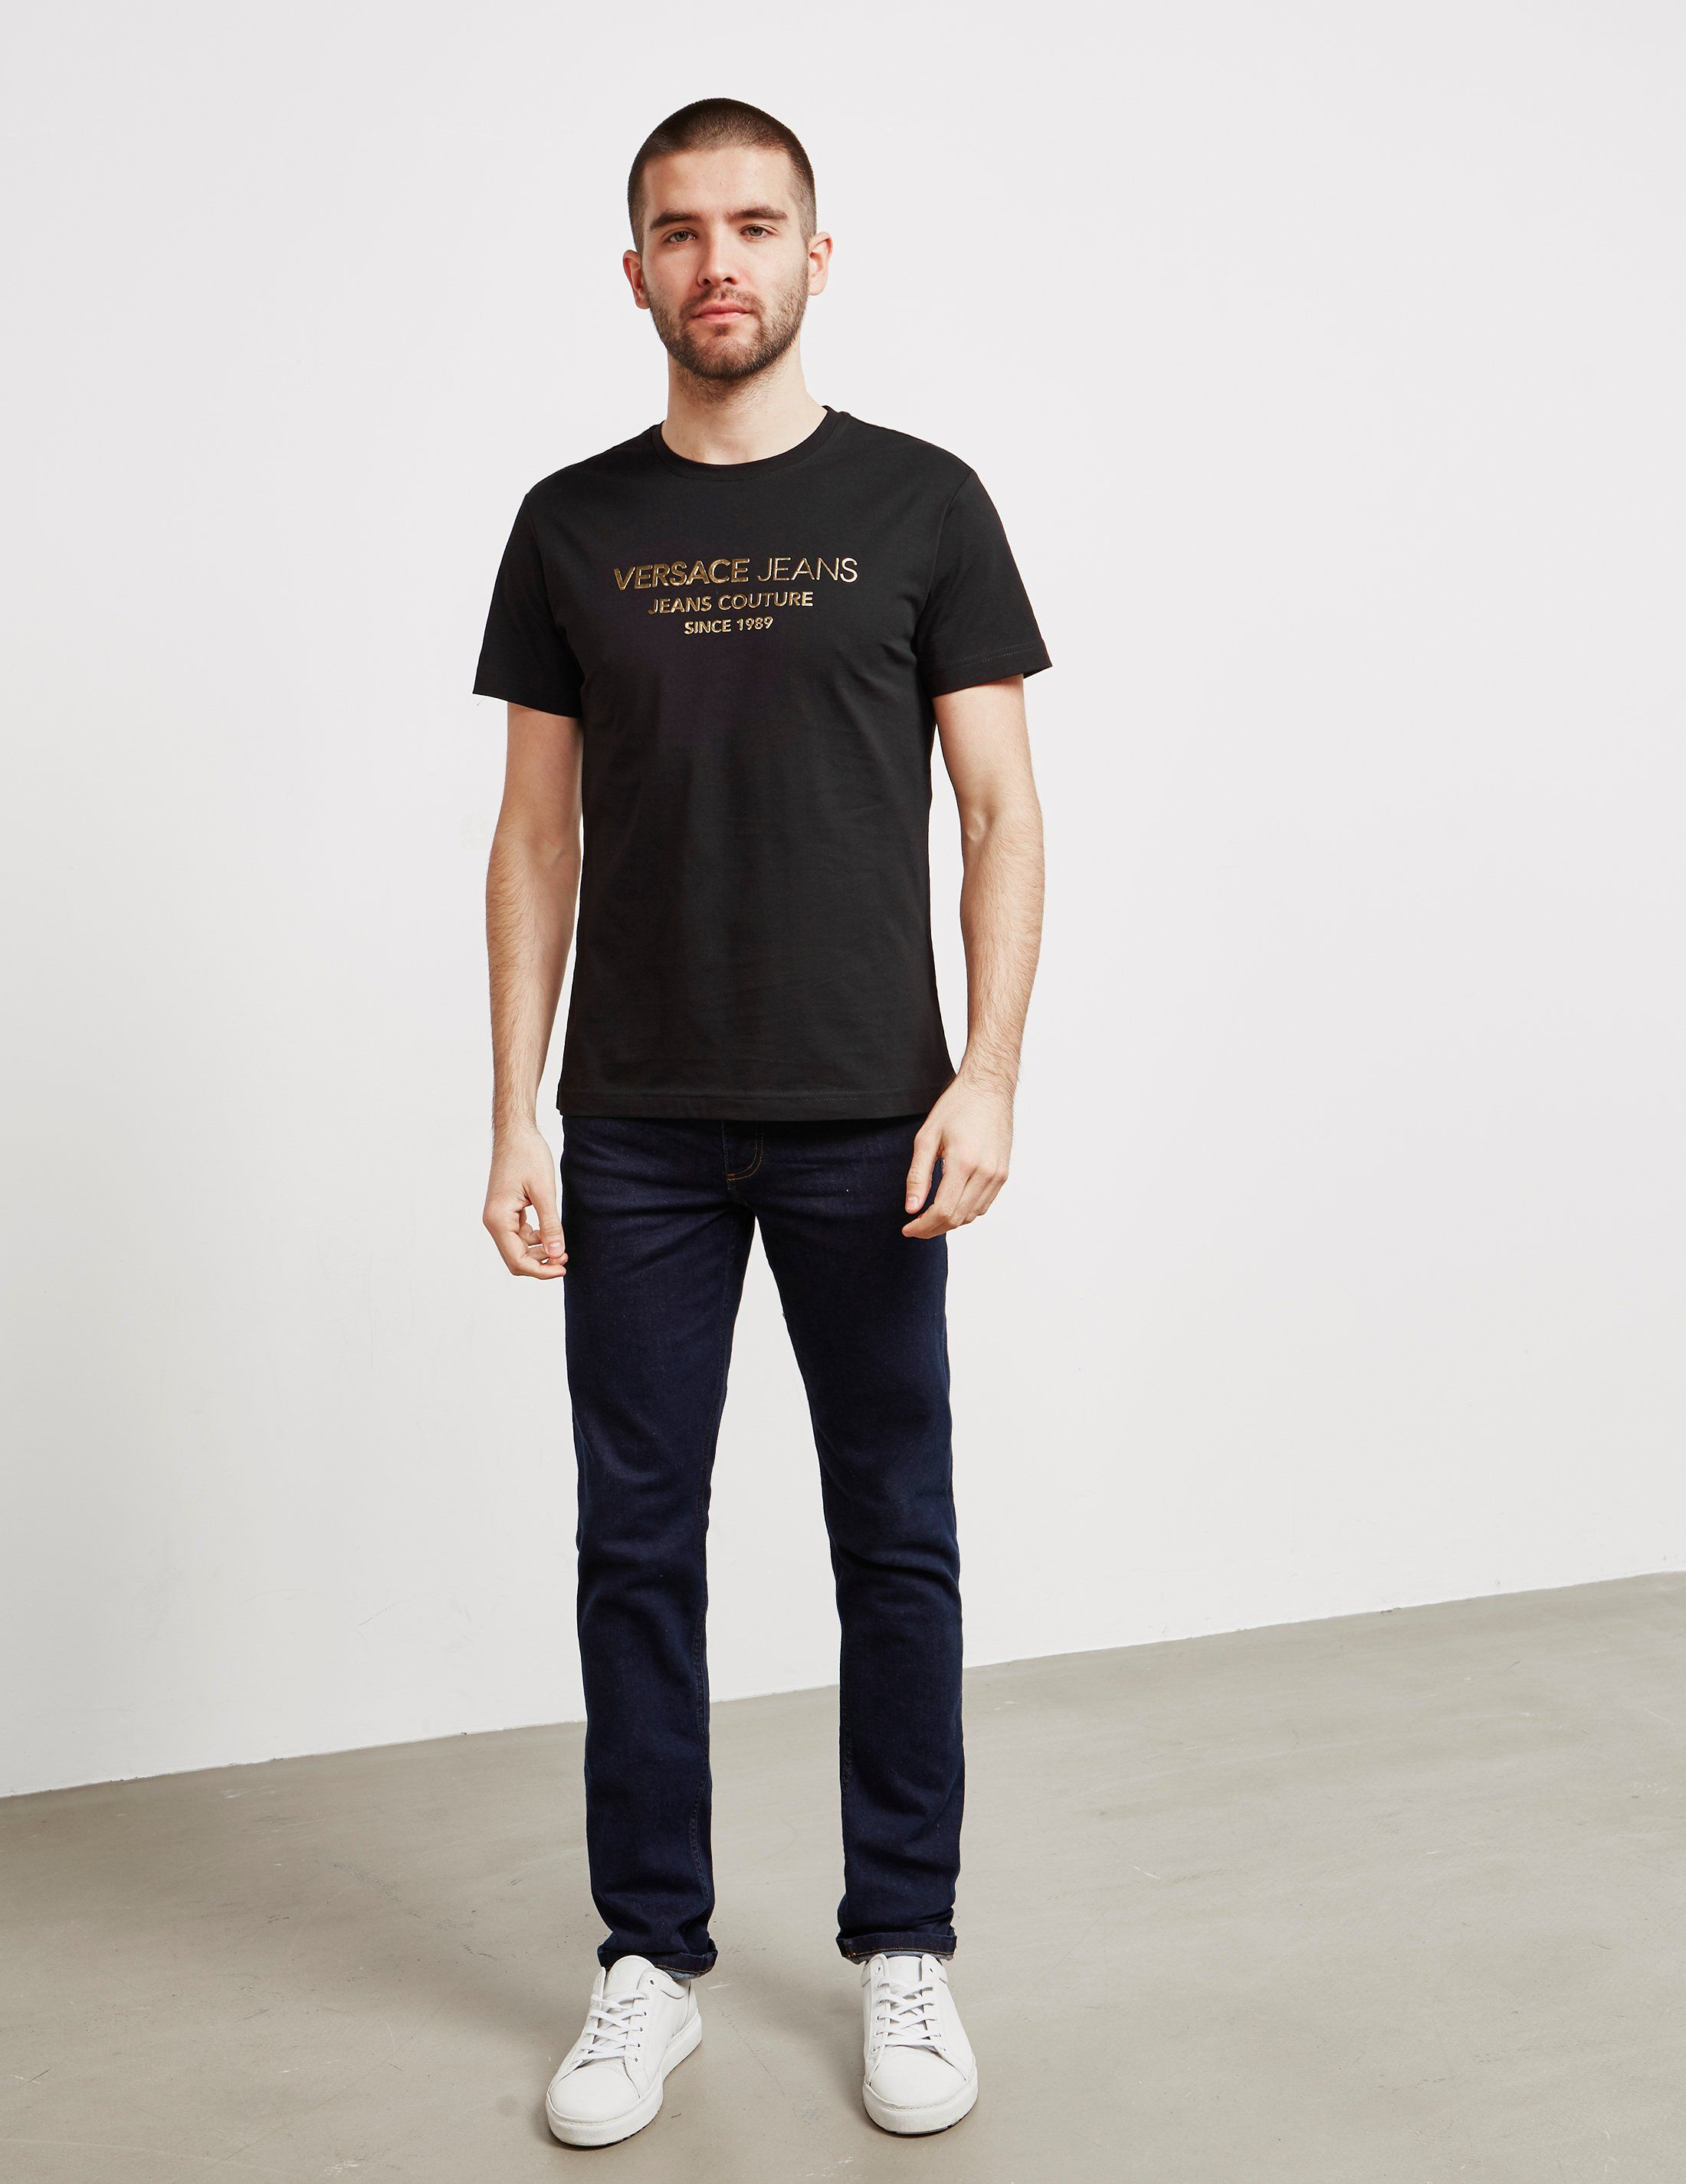 Versace Jeans Foil Corp Short Sleeve T-Shirt- Online Exclusive